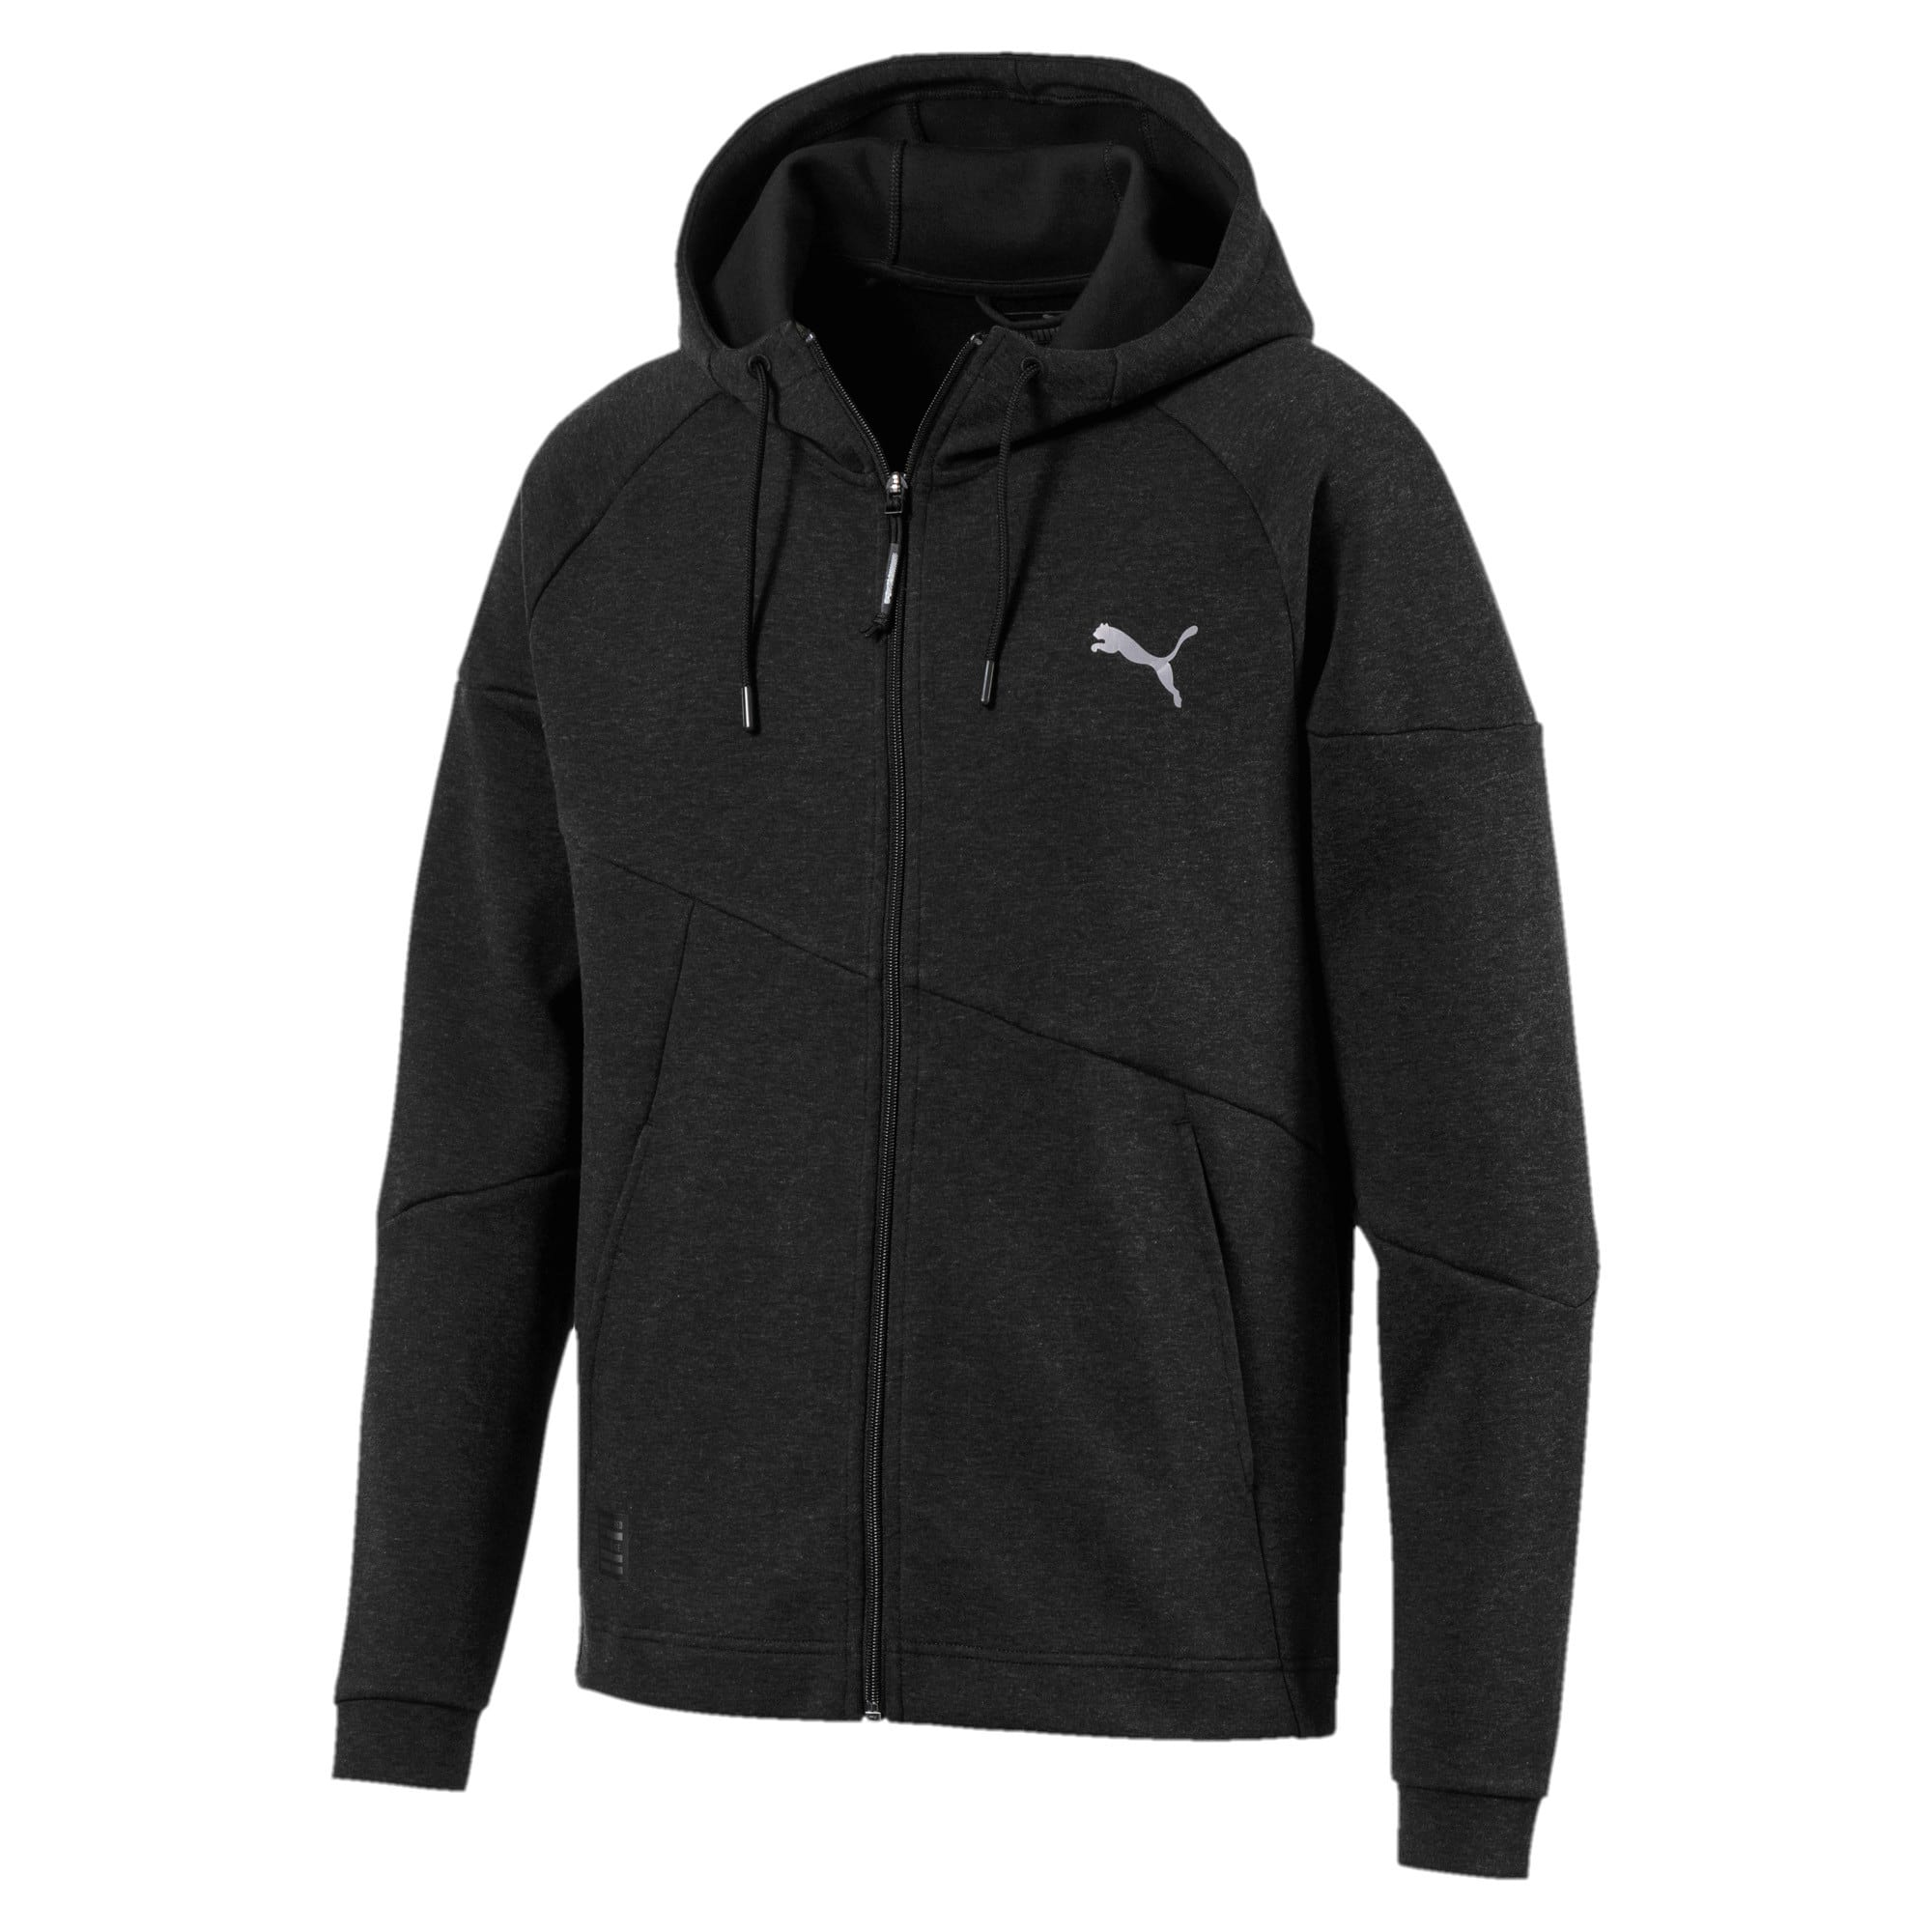 Thumbnail 5 of BND Tech Second Layer Knitted Hooded Men's Jacket, Puma Black Heather, medium-IND